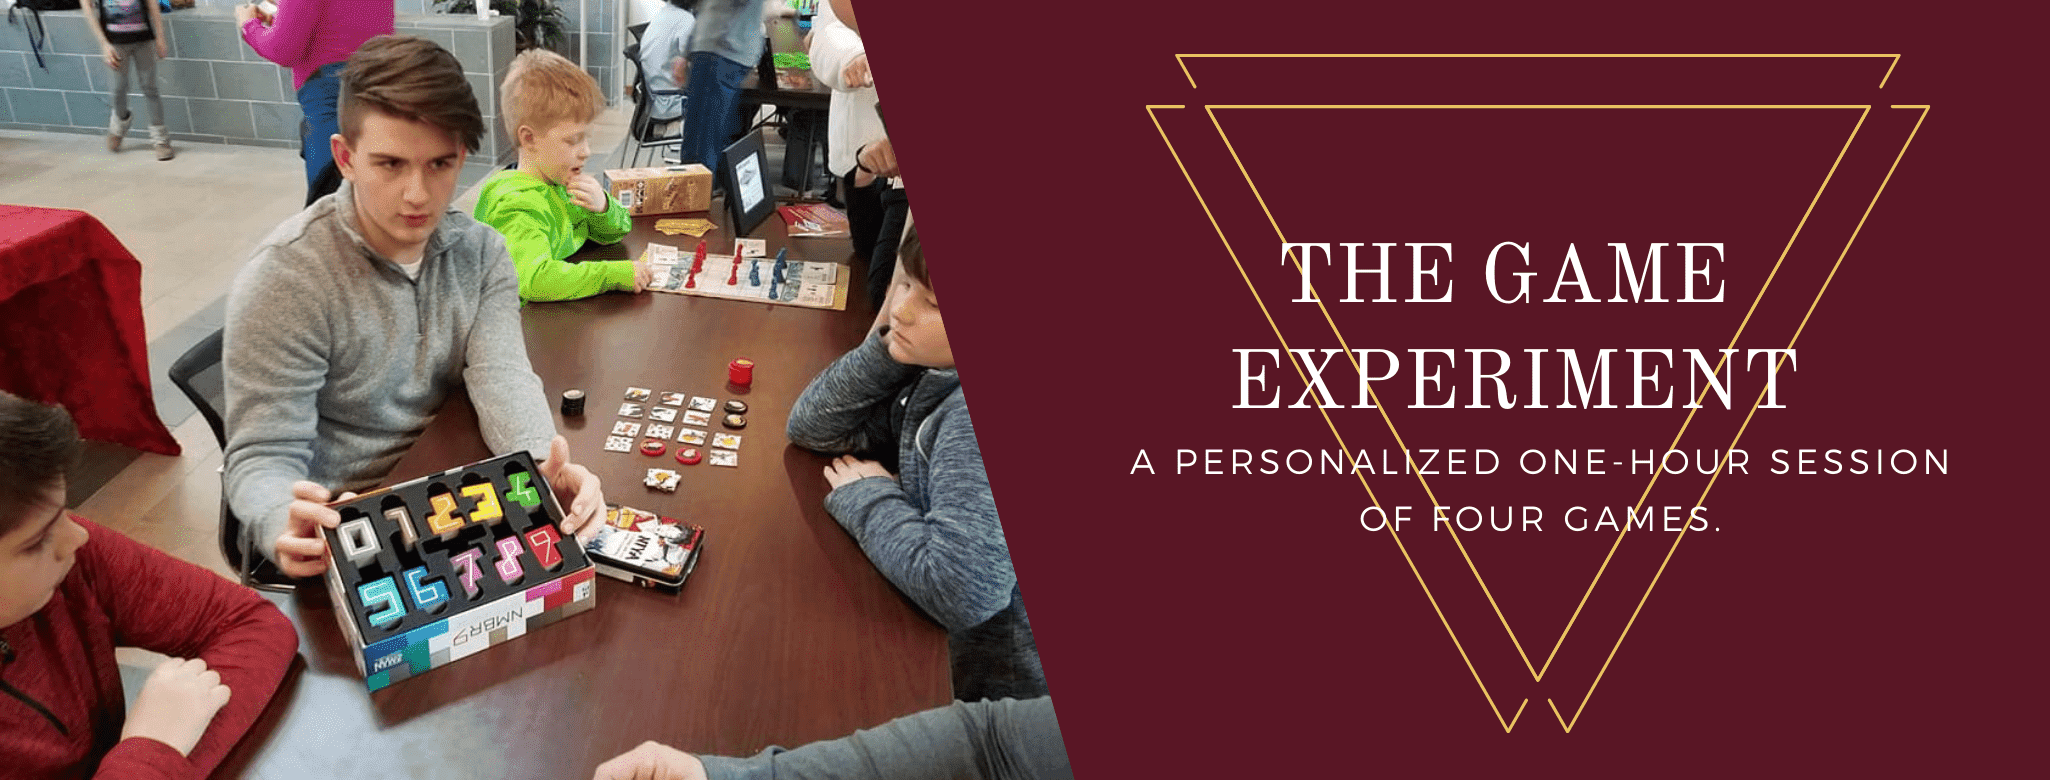 The GameExperience-- A personalized one hour session of four games